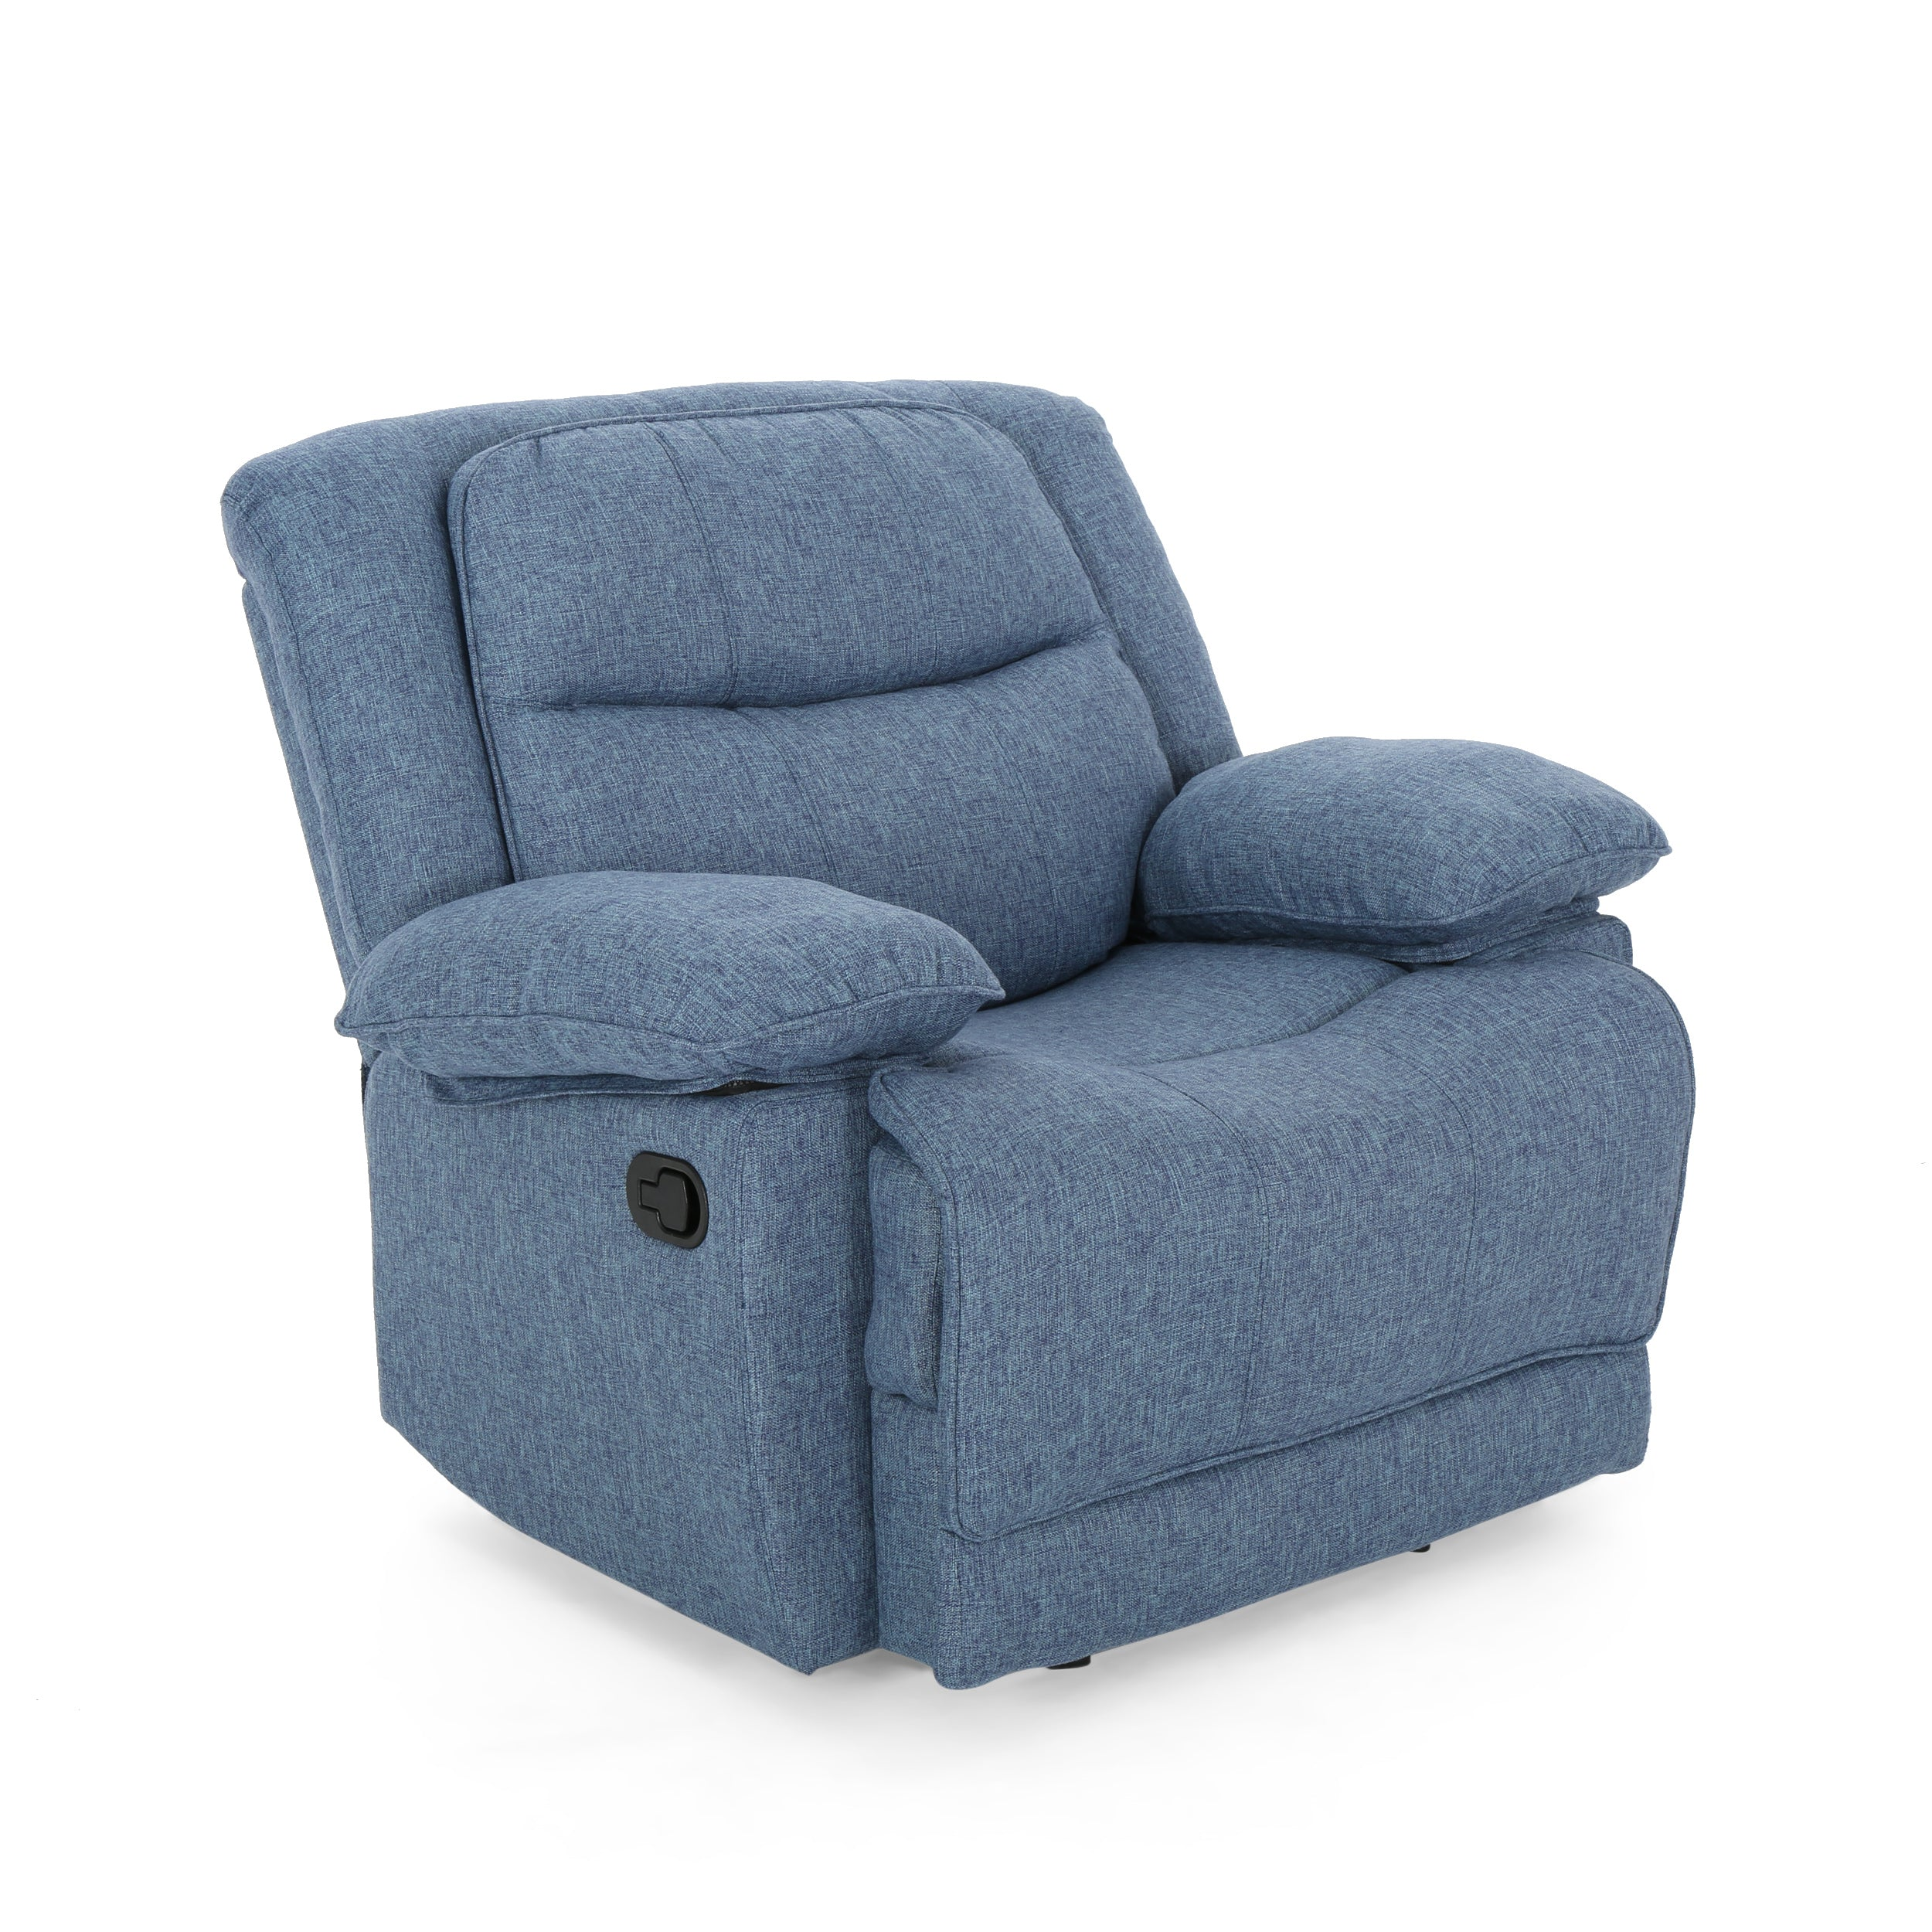 Antoinette Contemporary Pillow Tufted Upholstered Fabric Glider Recliner Navy Bue